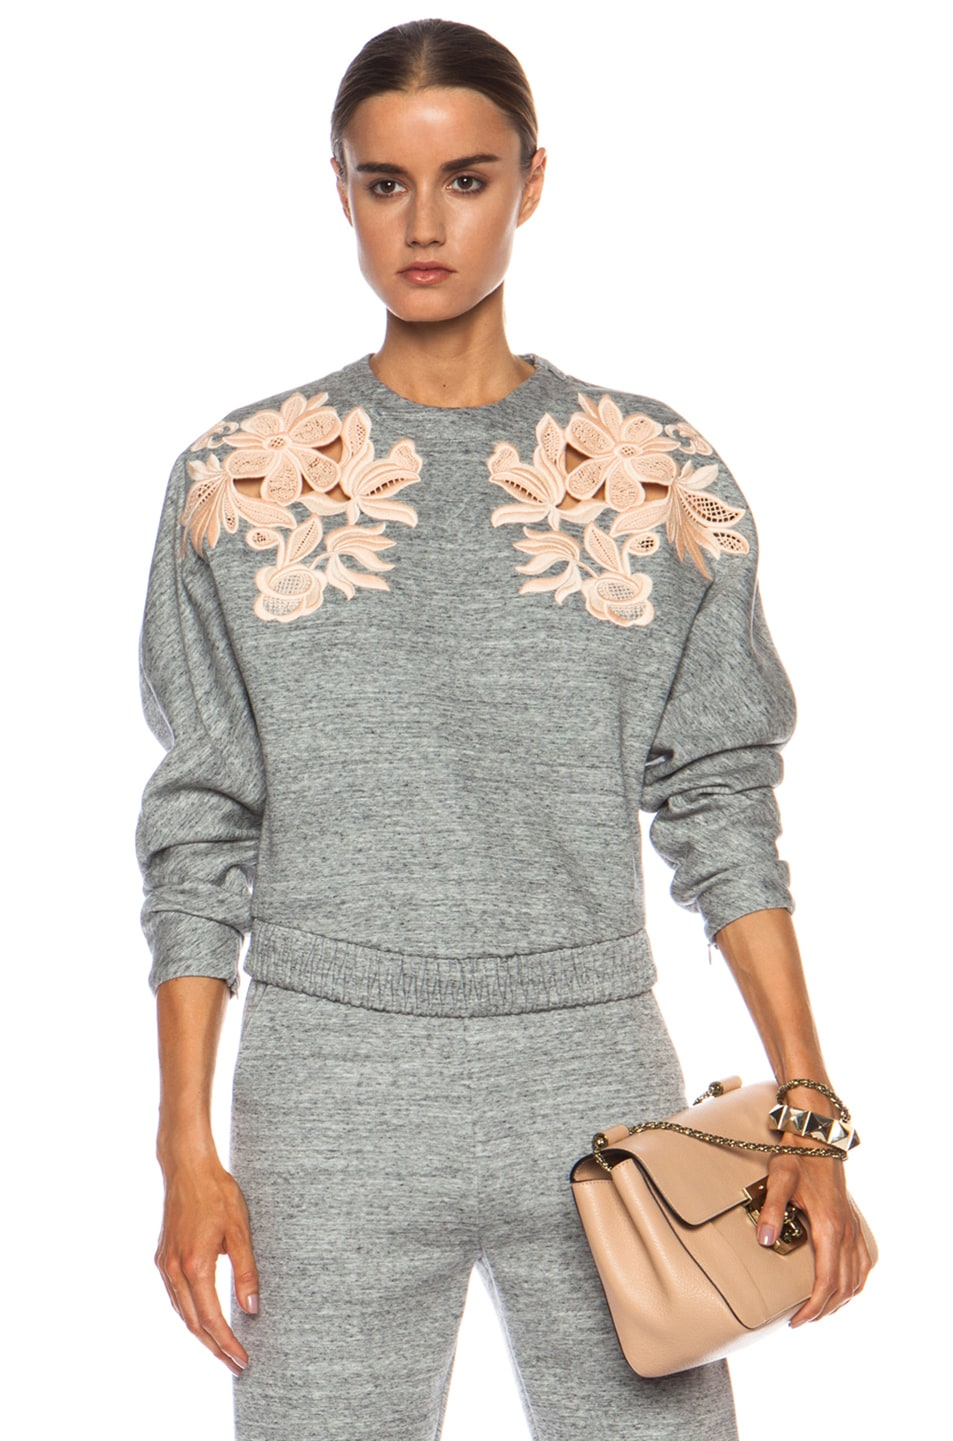 Image 1 of 3.1 phillip lim Embroidered Cotton-Blend Sweatshirt in Charcoal